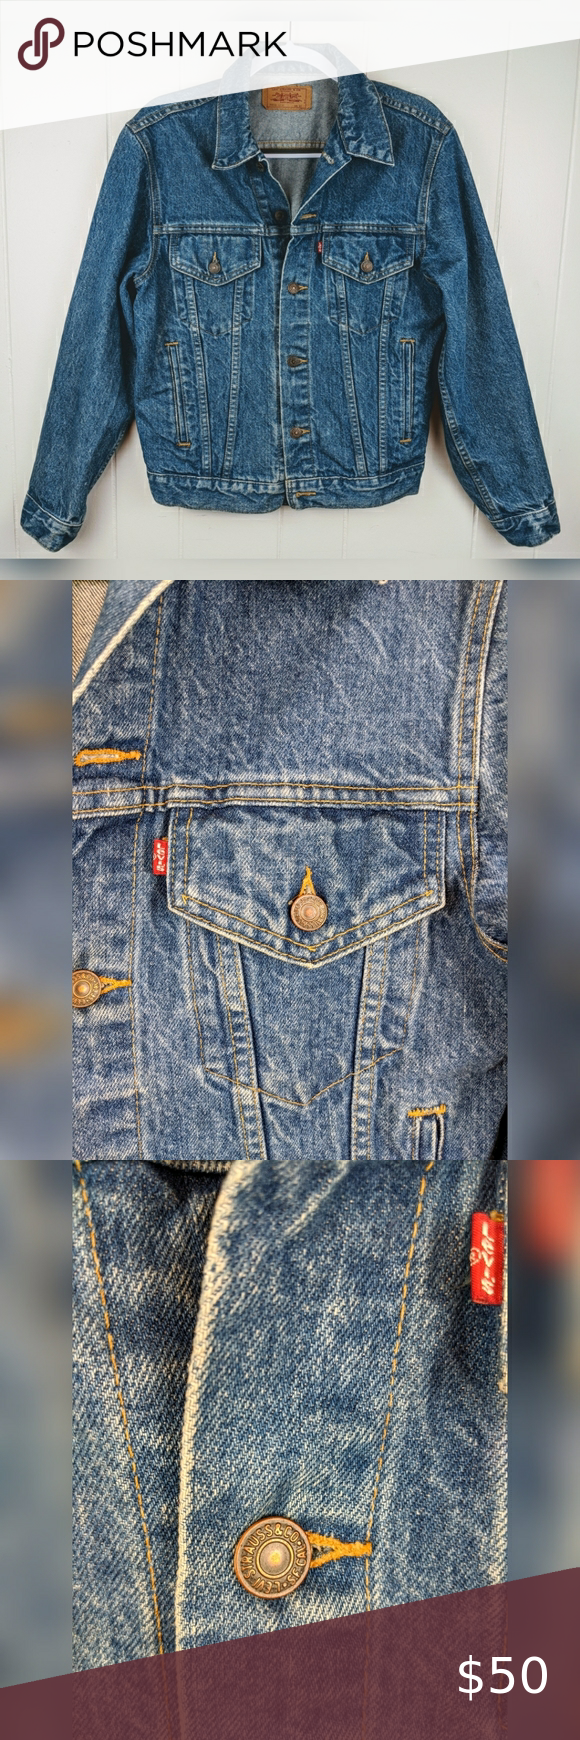 Men's Vintage Levi's Denim Jean Trucker Jacket, 40 Item: Men's Vintage Levi's Denim Jean Trucker Jacket Style No: 70506 0214 Size: 40 (please check measurements as vintage sizes vary from current ones) Color: Medium blue wash Condition: Excellent, just a very small snag on left sleeve (see pic # 6) Features: Thick vintage denim material, button down front, side and front pockets.Made in the USA.  *Measurements are approximate Chest: 40